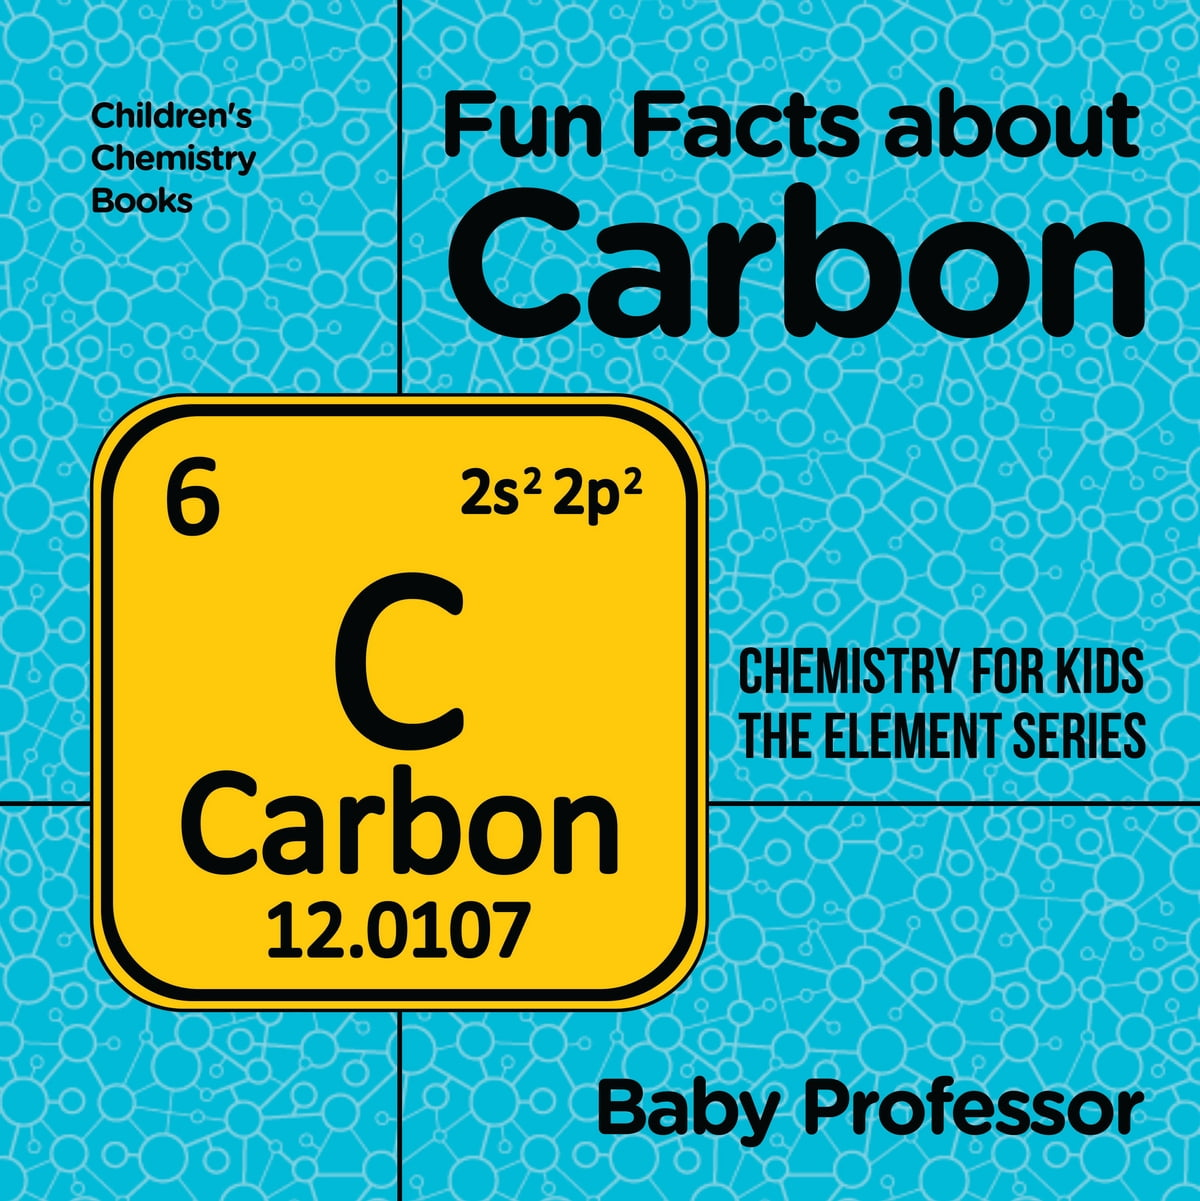 Fun facts about carbon chemistry for kids the element series fun facts about carbon chemistry for kids the element series childrens chemistry books ebook by baby professor 9781541940673 rakuten kobo gamestrikefo Images